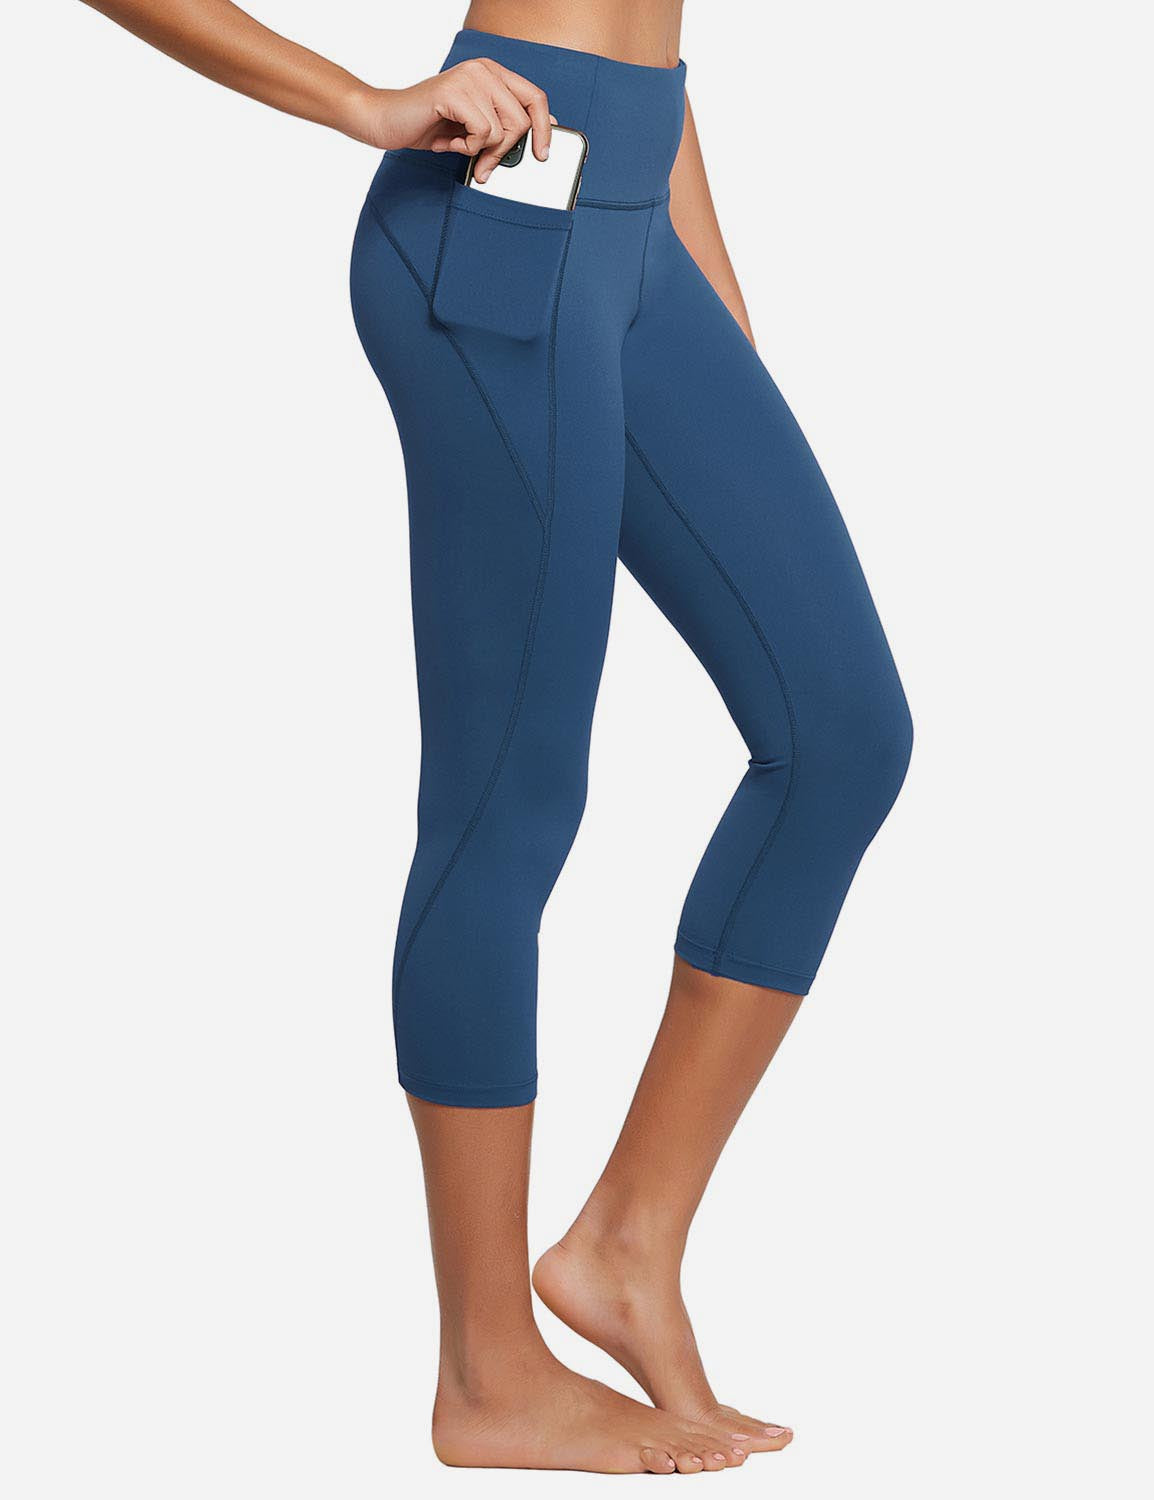 Baleaf Womens High Rise Bottom Contour Pocketed Capris Denim Blue Side